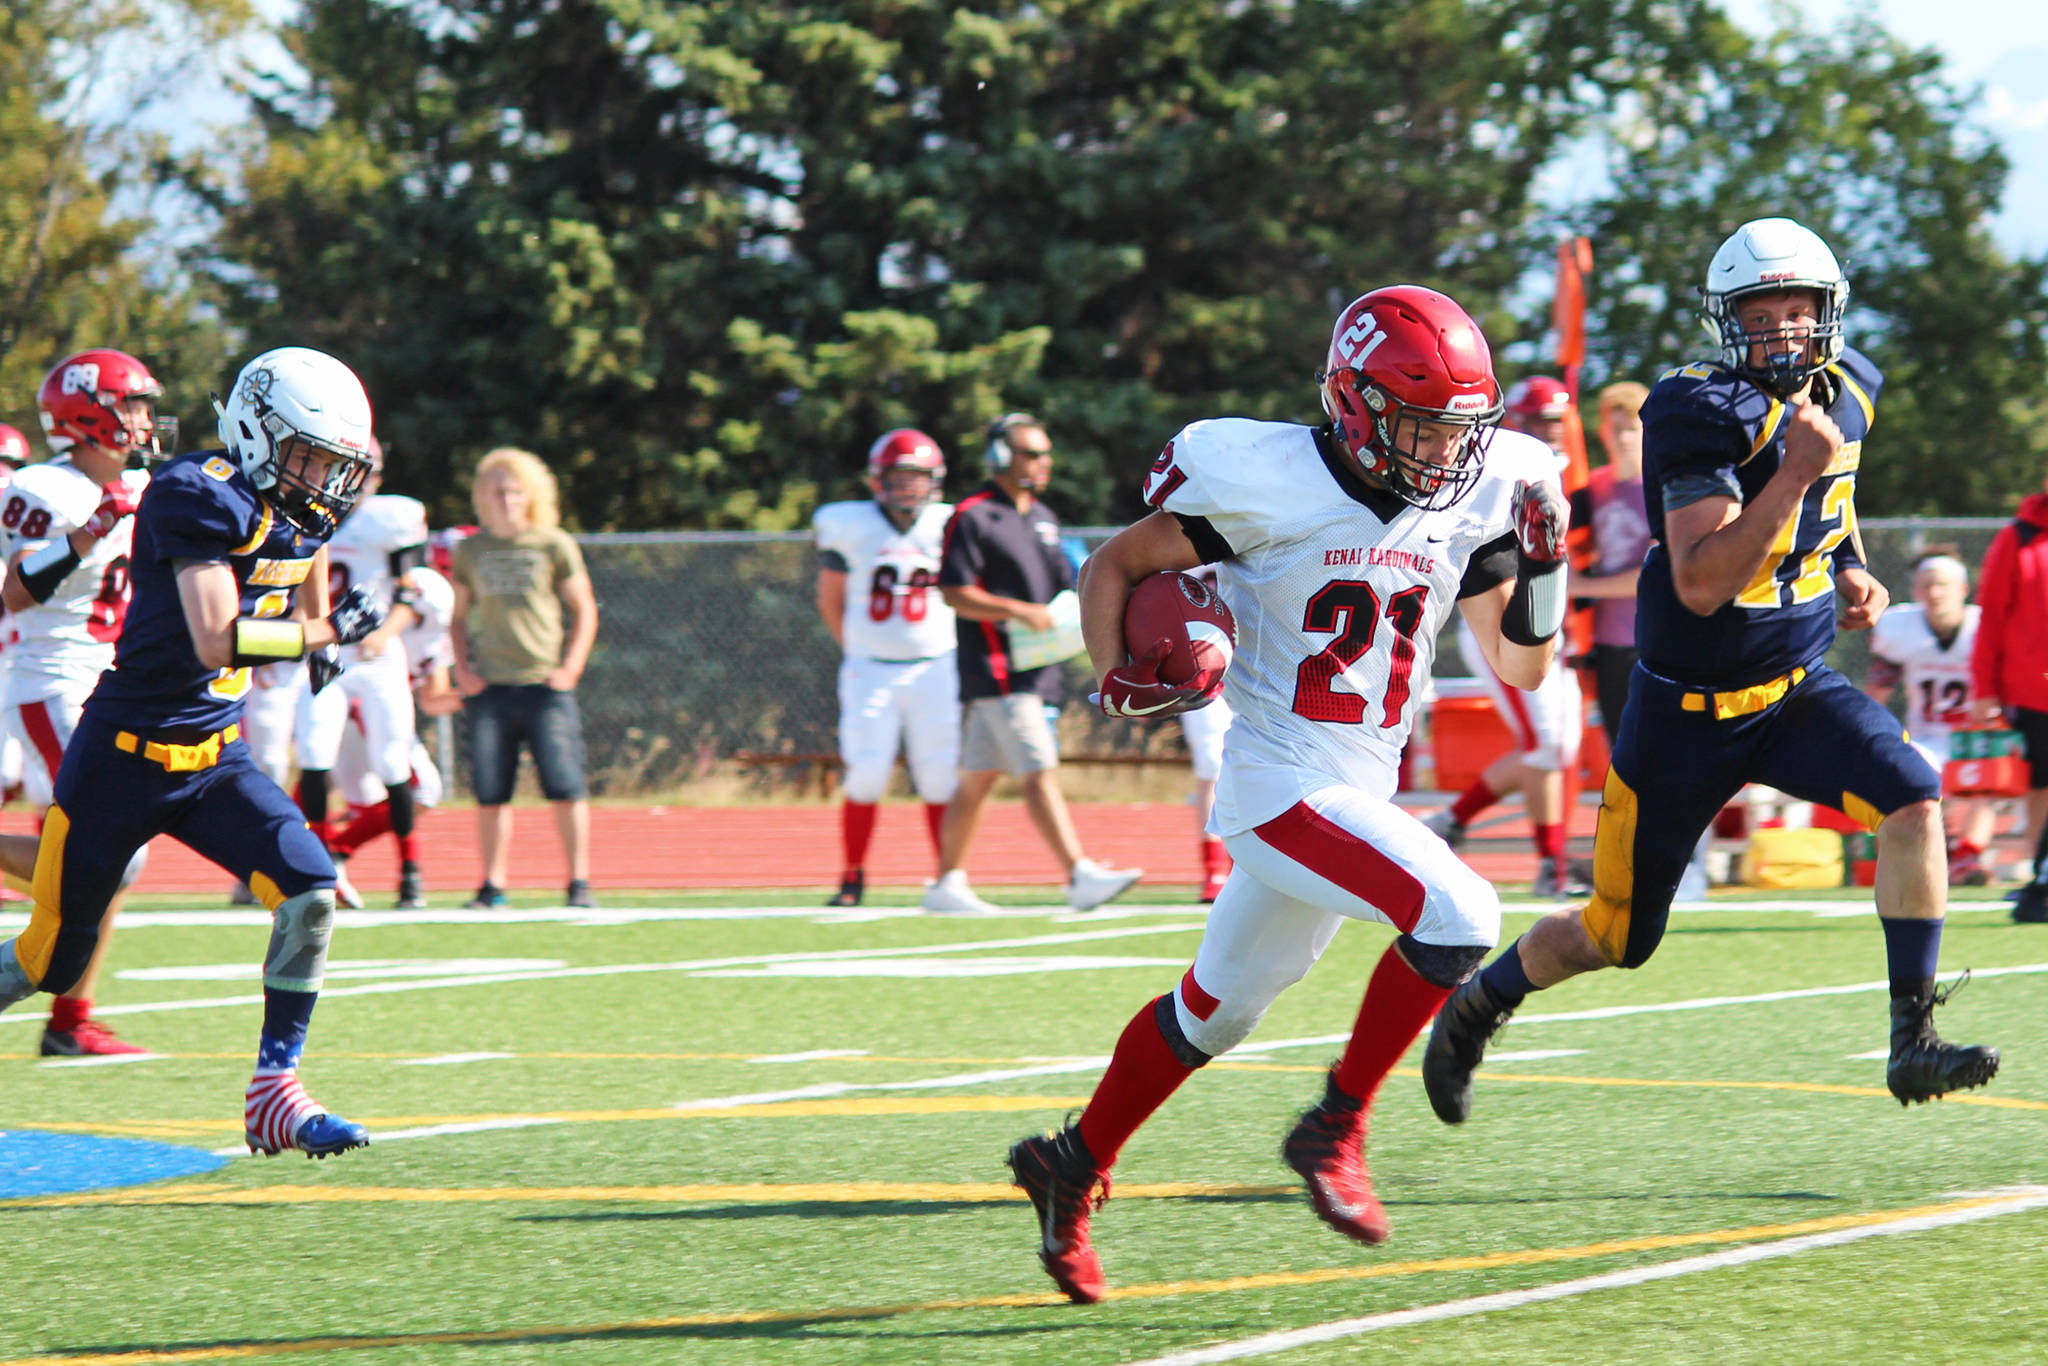 Kenai Central High School senior Zach Burnett breaks away from the Homer defense to make a 62-yard run and touchdown for the Kardinals during a Saturday, Aug. 17, 2019 football game at the Mariner field in Homer, Alaska. (Photo by Megan Pacer/Homer News)